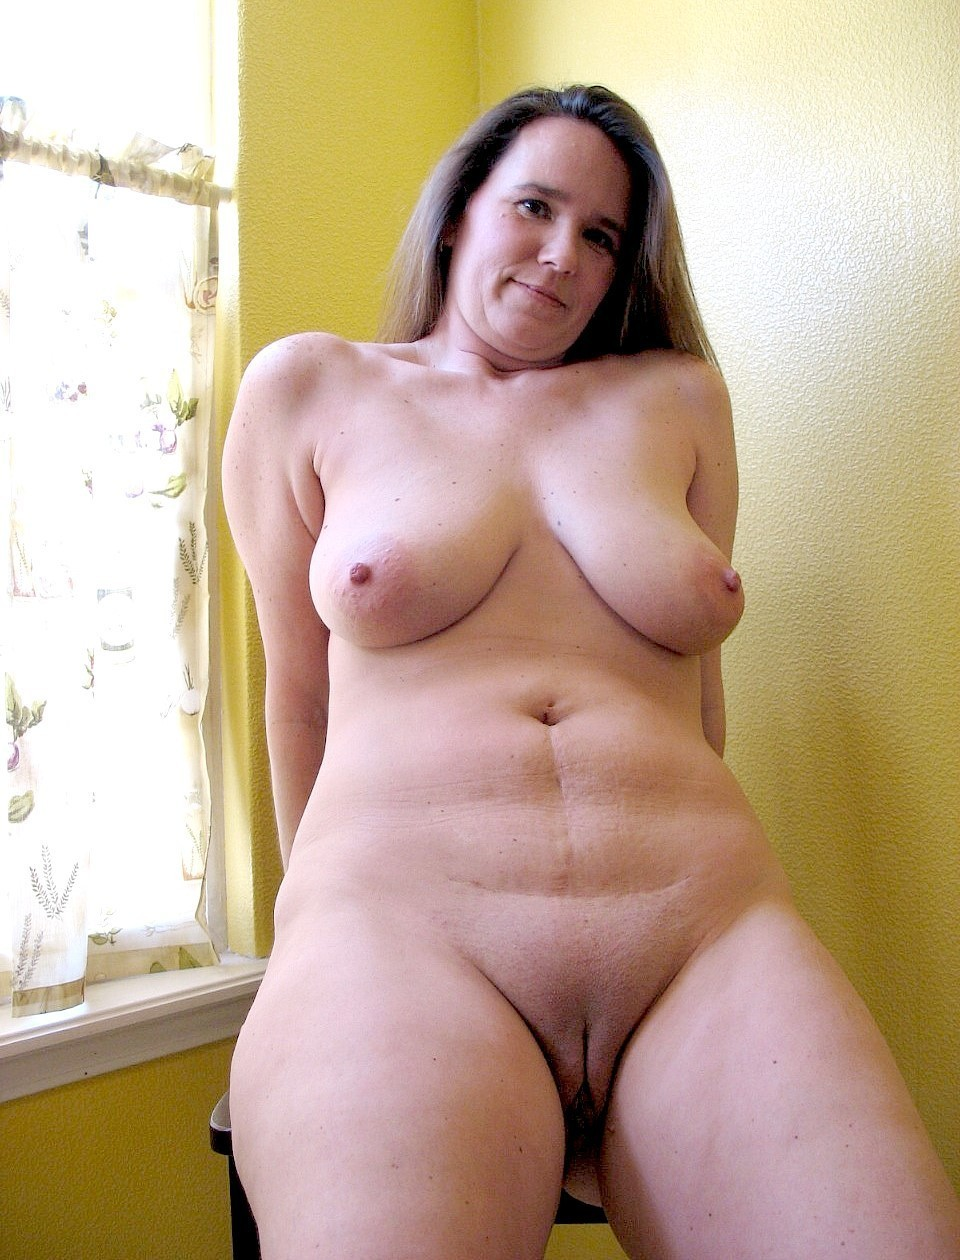 Fuck porn posted pussy tit can